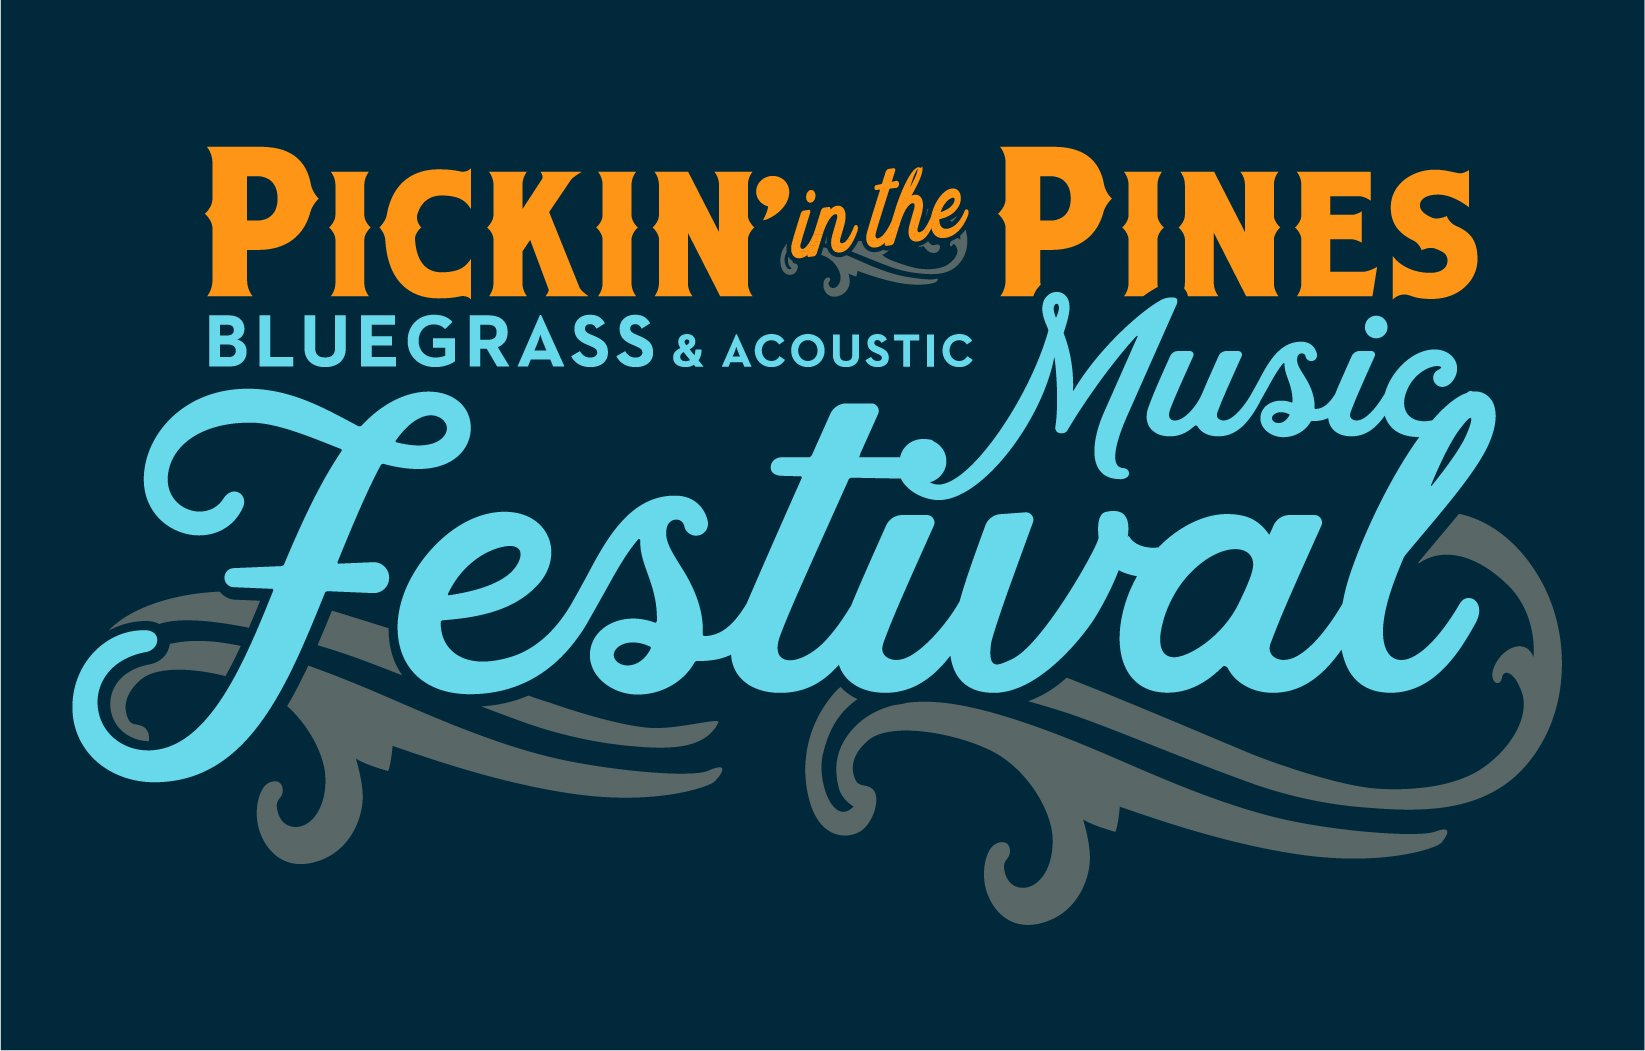 Pickin' in the Pines Bluegrass & Acoustic Music Festival | September 18-20, 2020 Logo